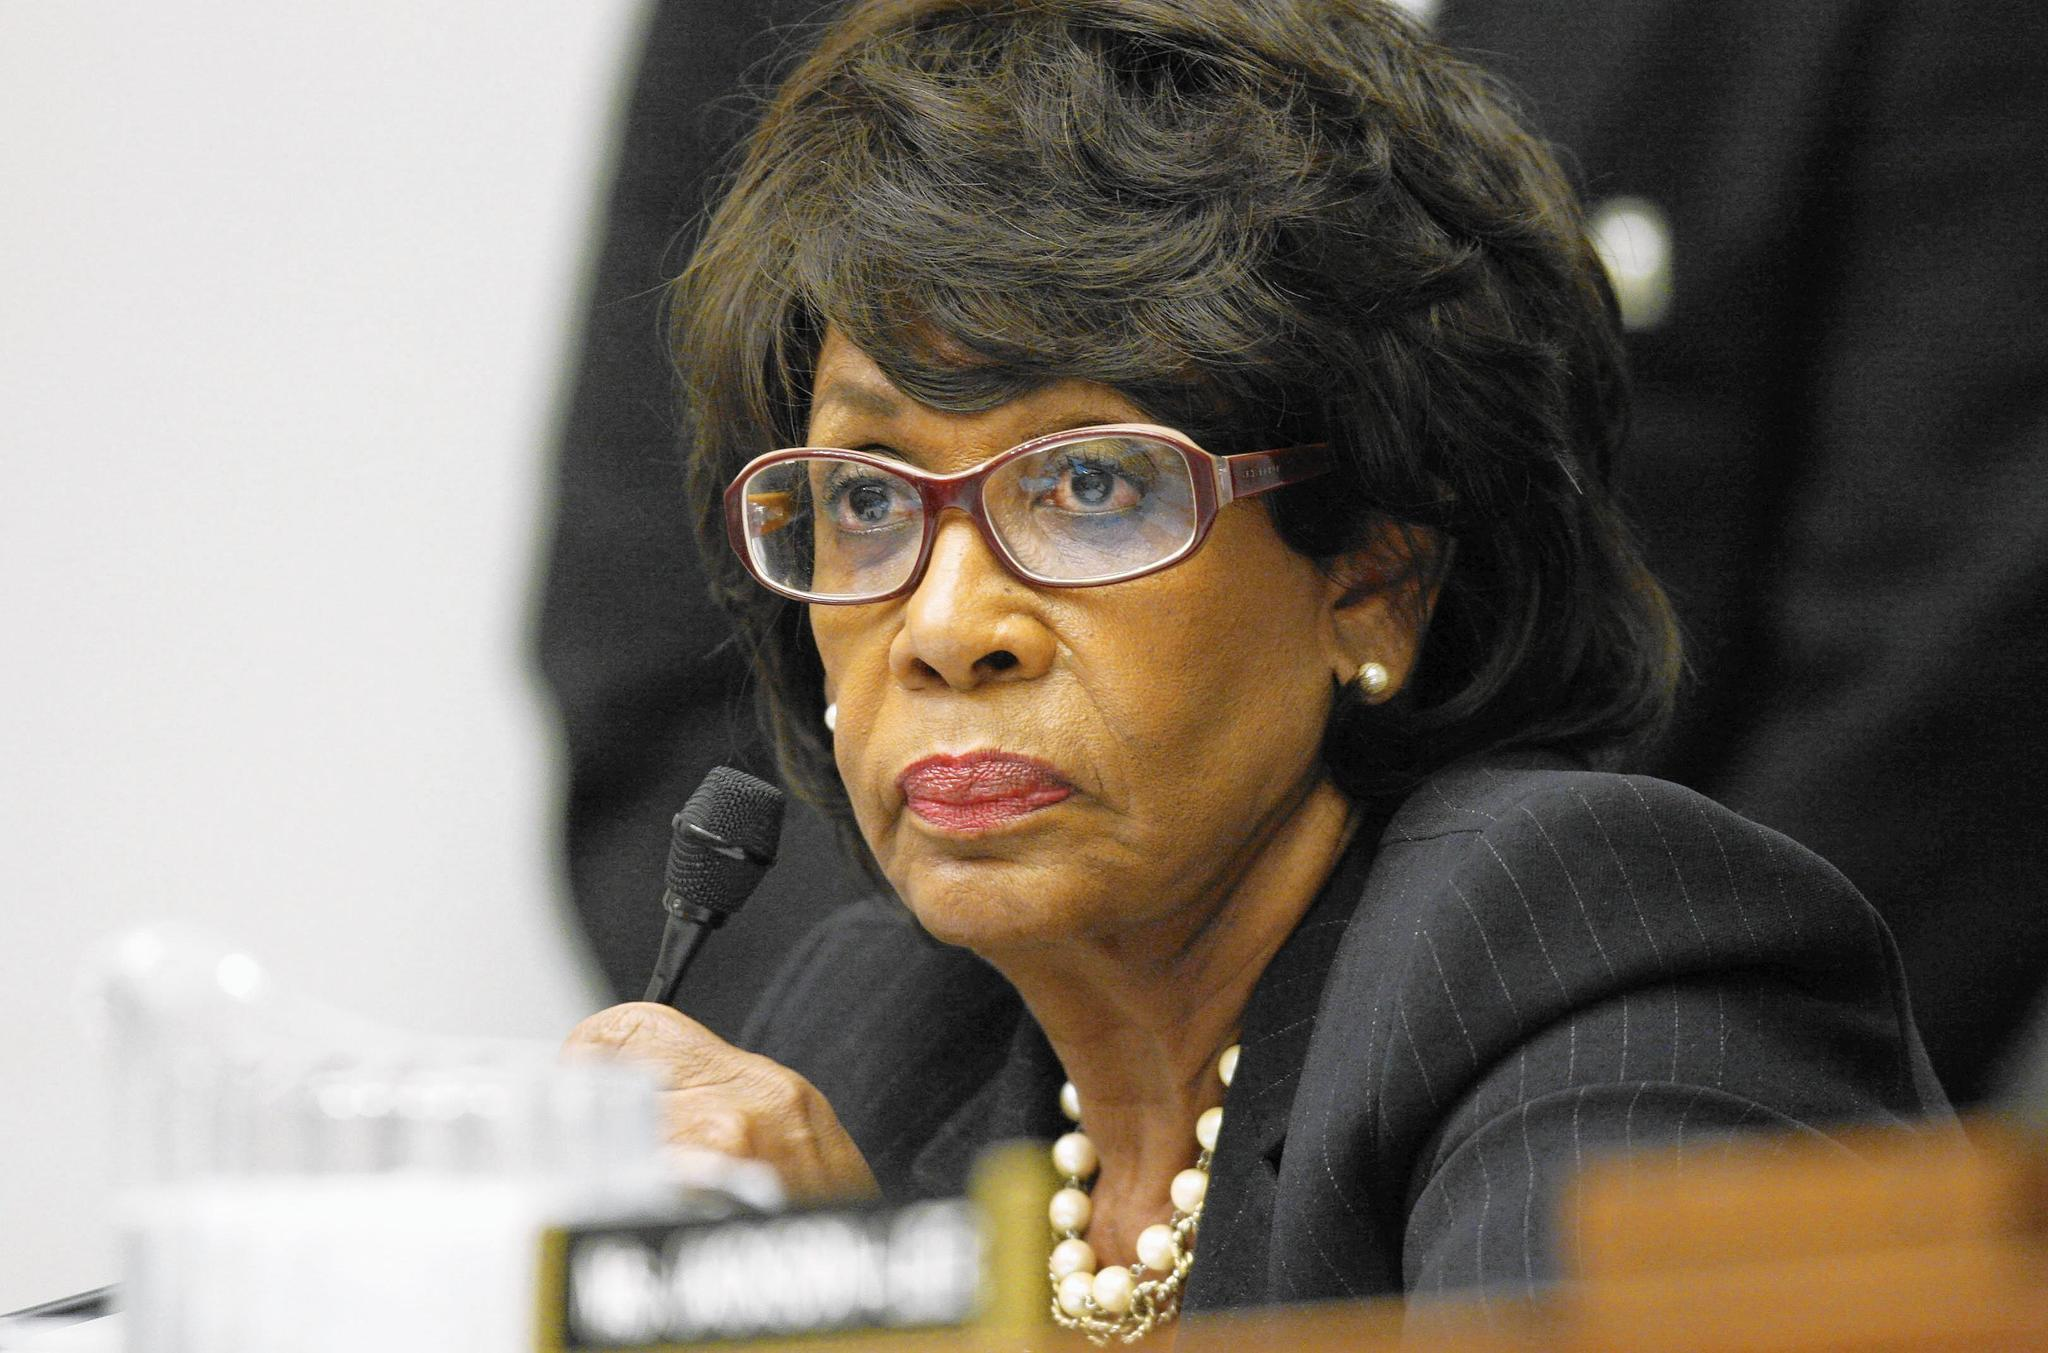 ct reclaiming my time maxine waters 20171228 reclaiming my time' is bigger than maxine waters chicago tribune